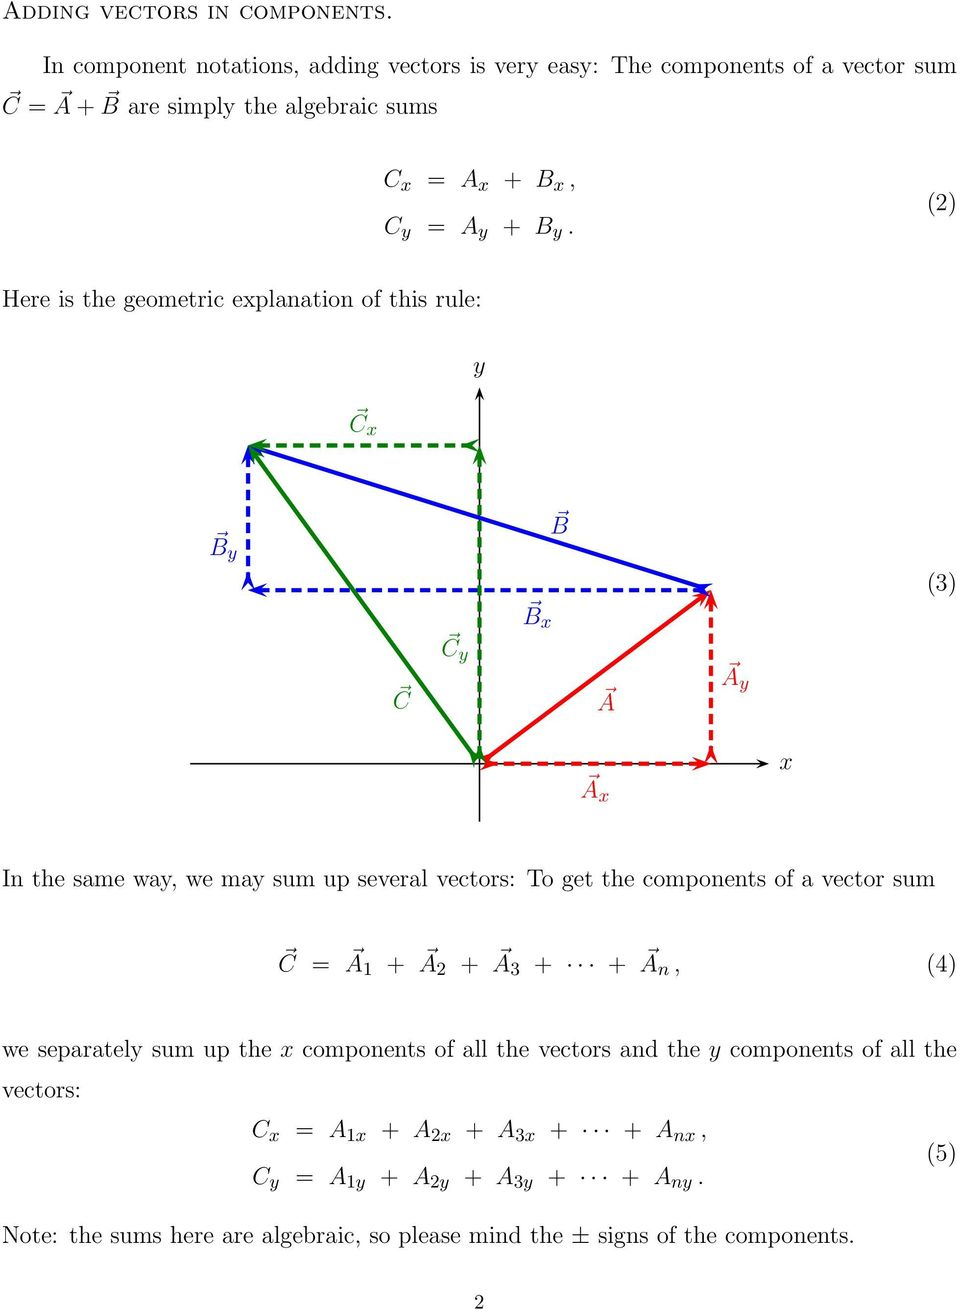 (2) Here is the geometric eplanation of this rule: C B C B B (3) C A A A In the same wa, we ma sum up several vectors: To get the components of a